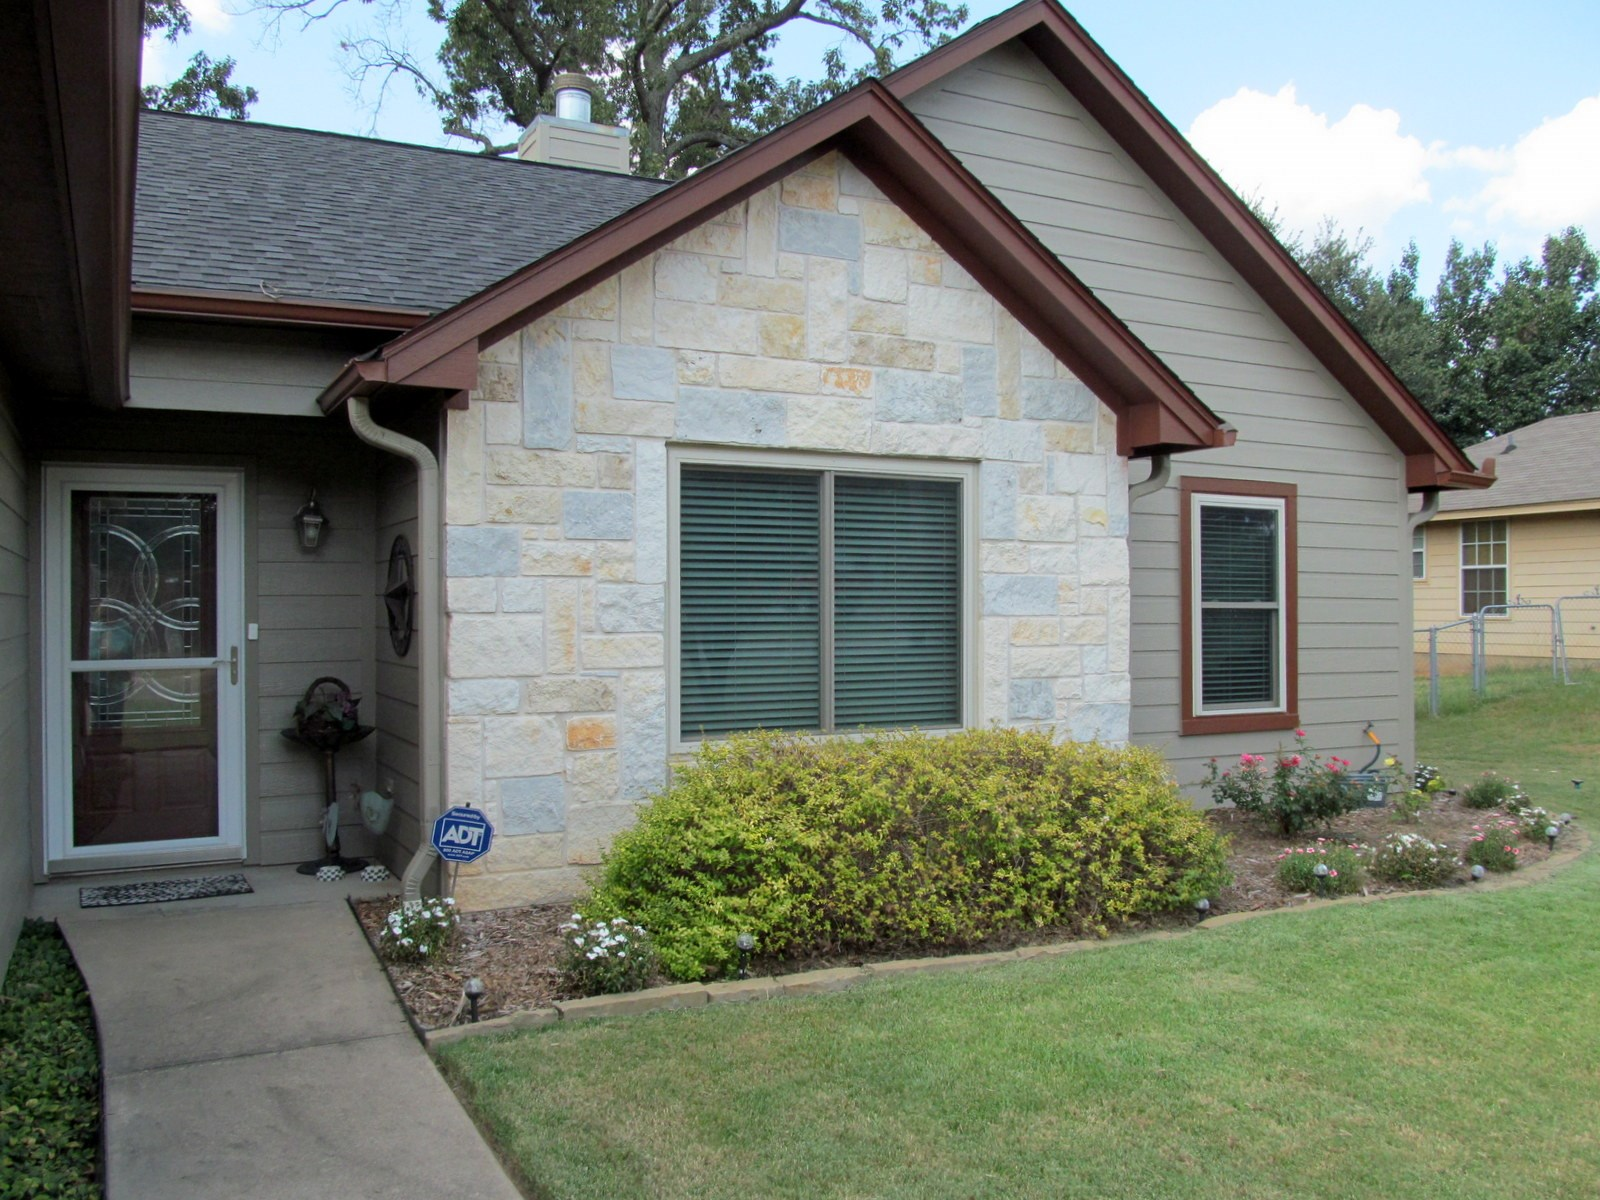 MOVE IN READY 3/2/2 WINNSBORO HOME - WOOD COUNTY TEXAS